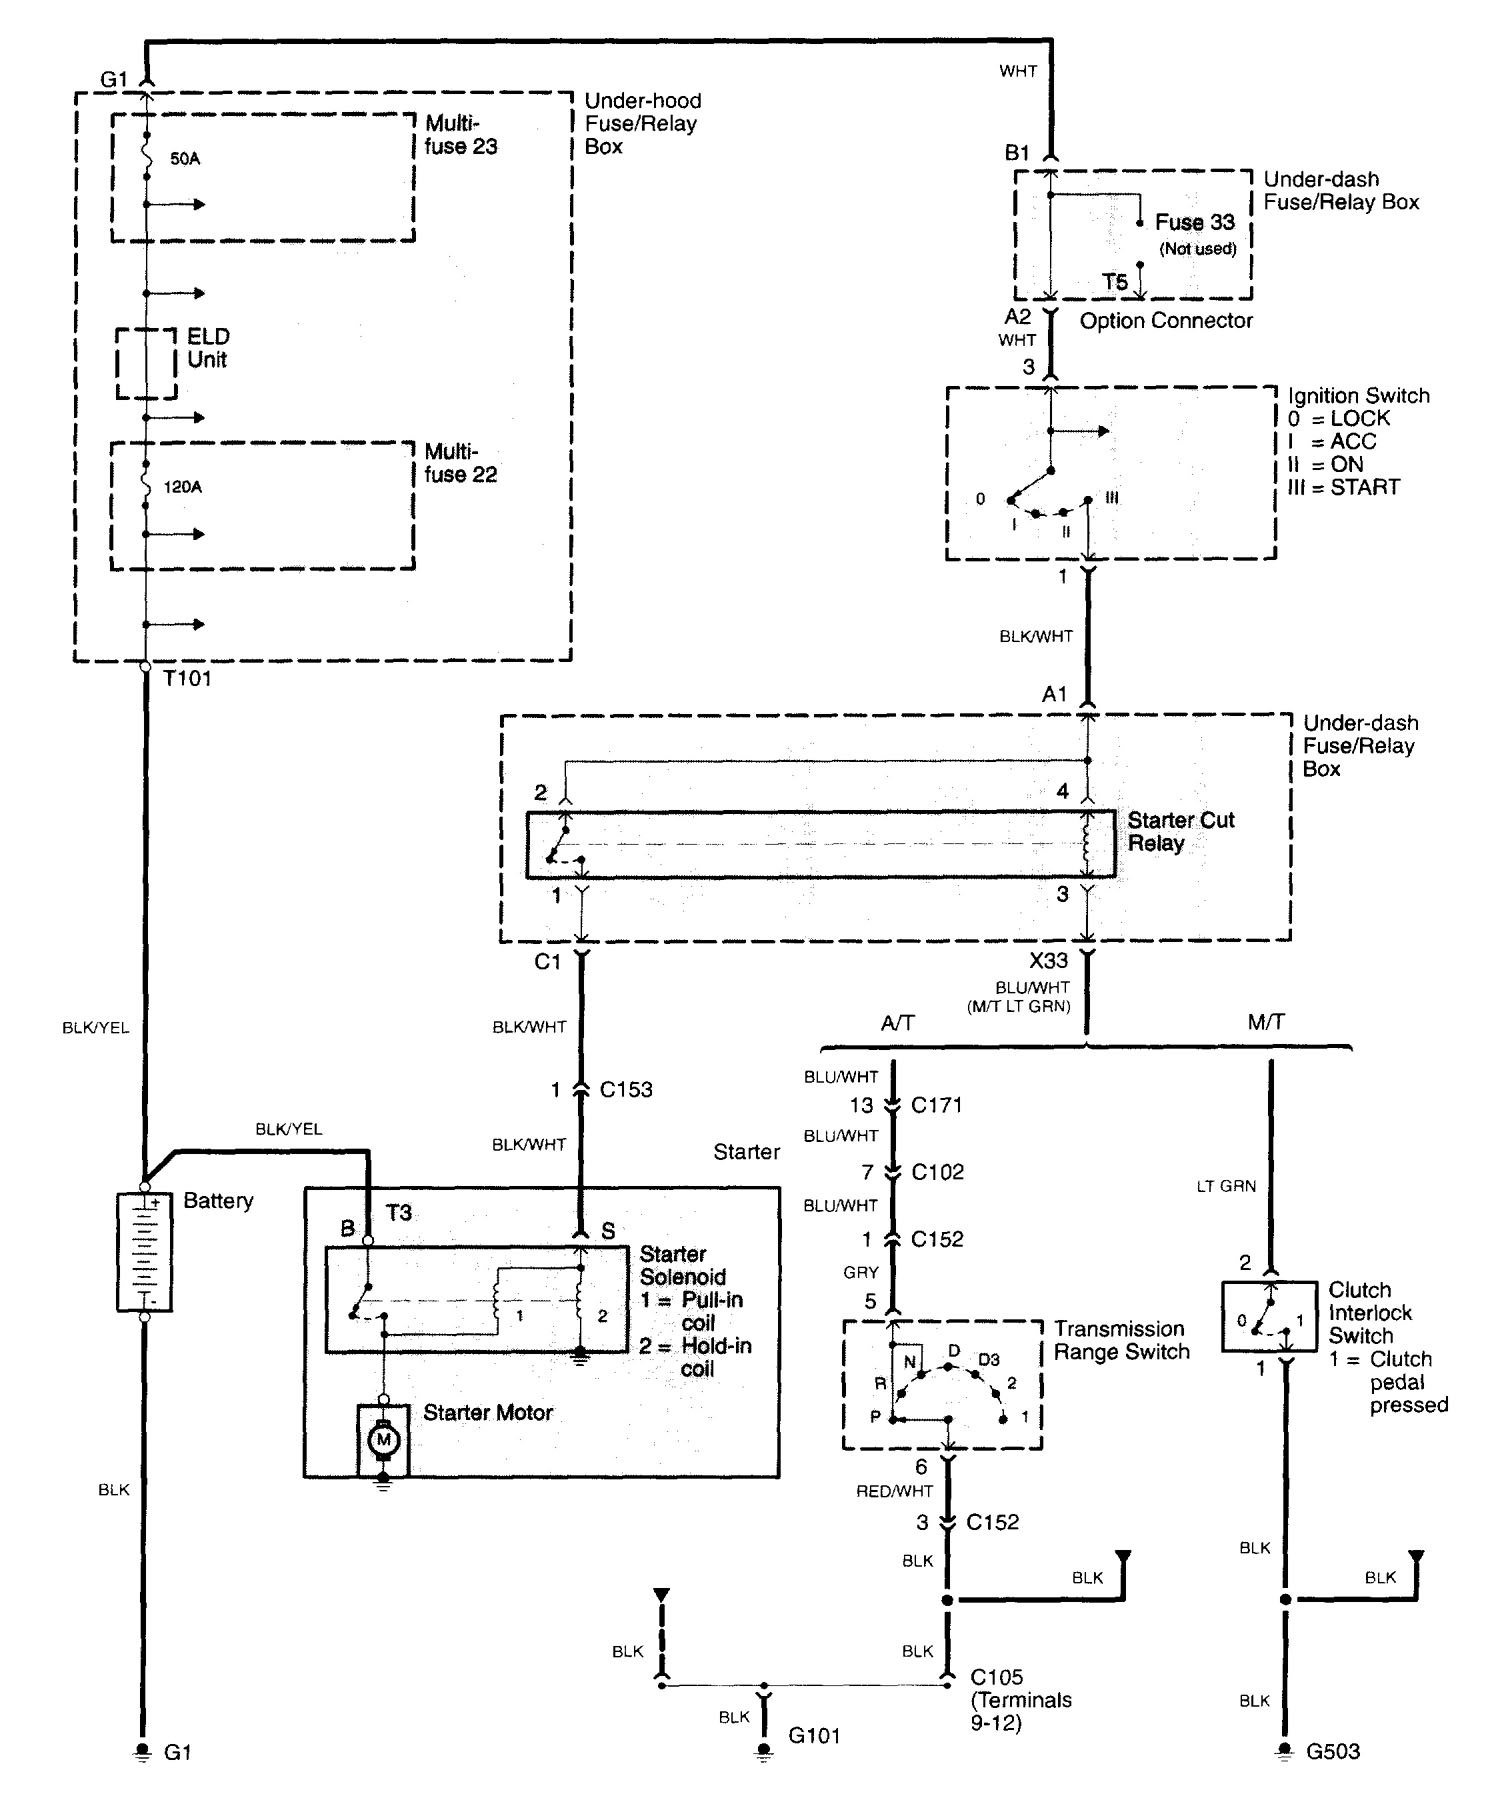 acura-tl-wiring-diagram-starting-2003 Acura Wiring Diagram on nsx radio wire, mdx fuse box, mdx rear suspension, mdx ignition wiring, legend engine,